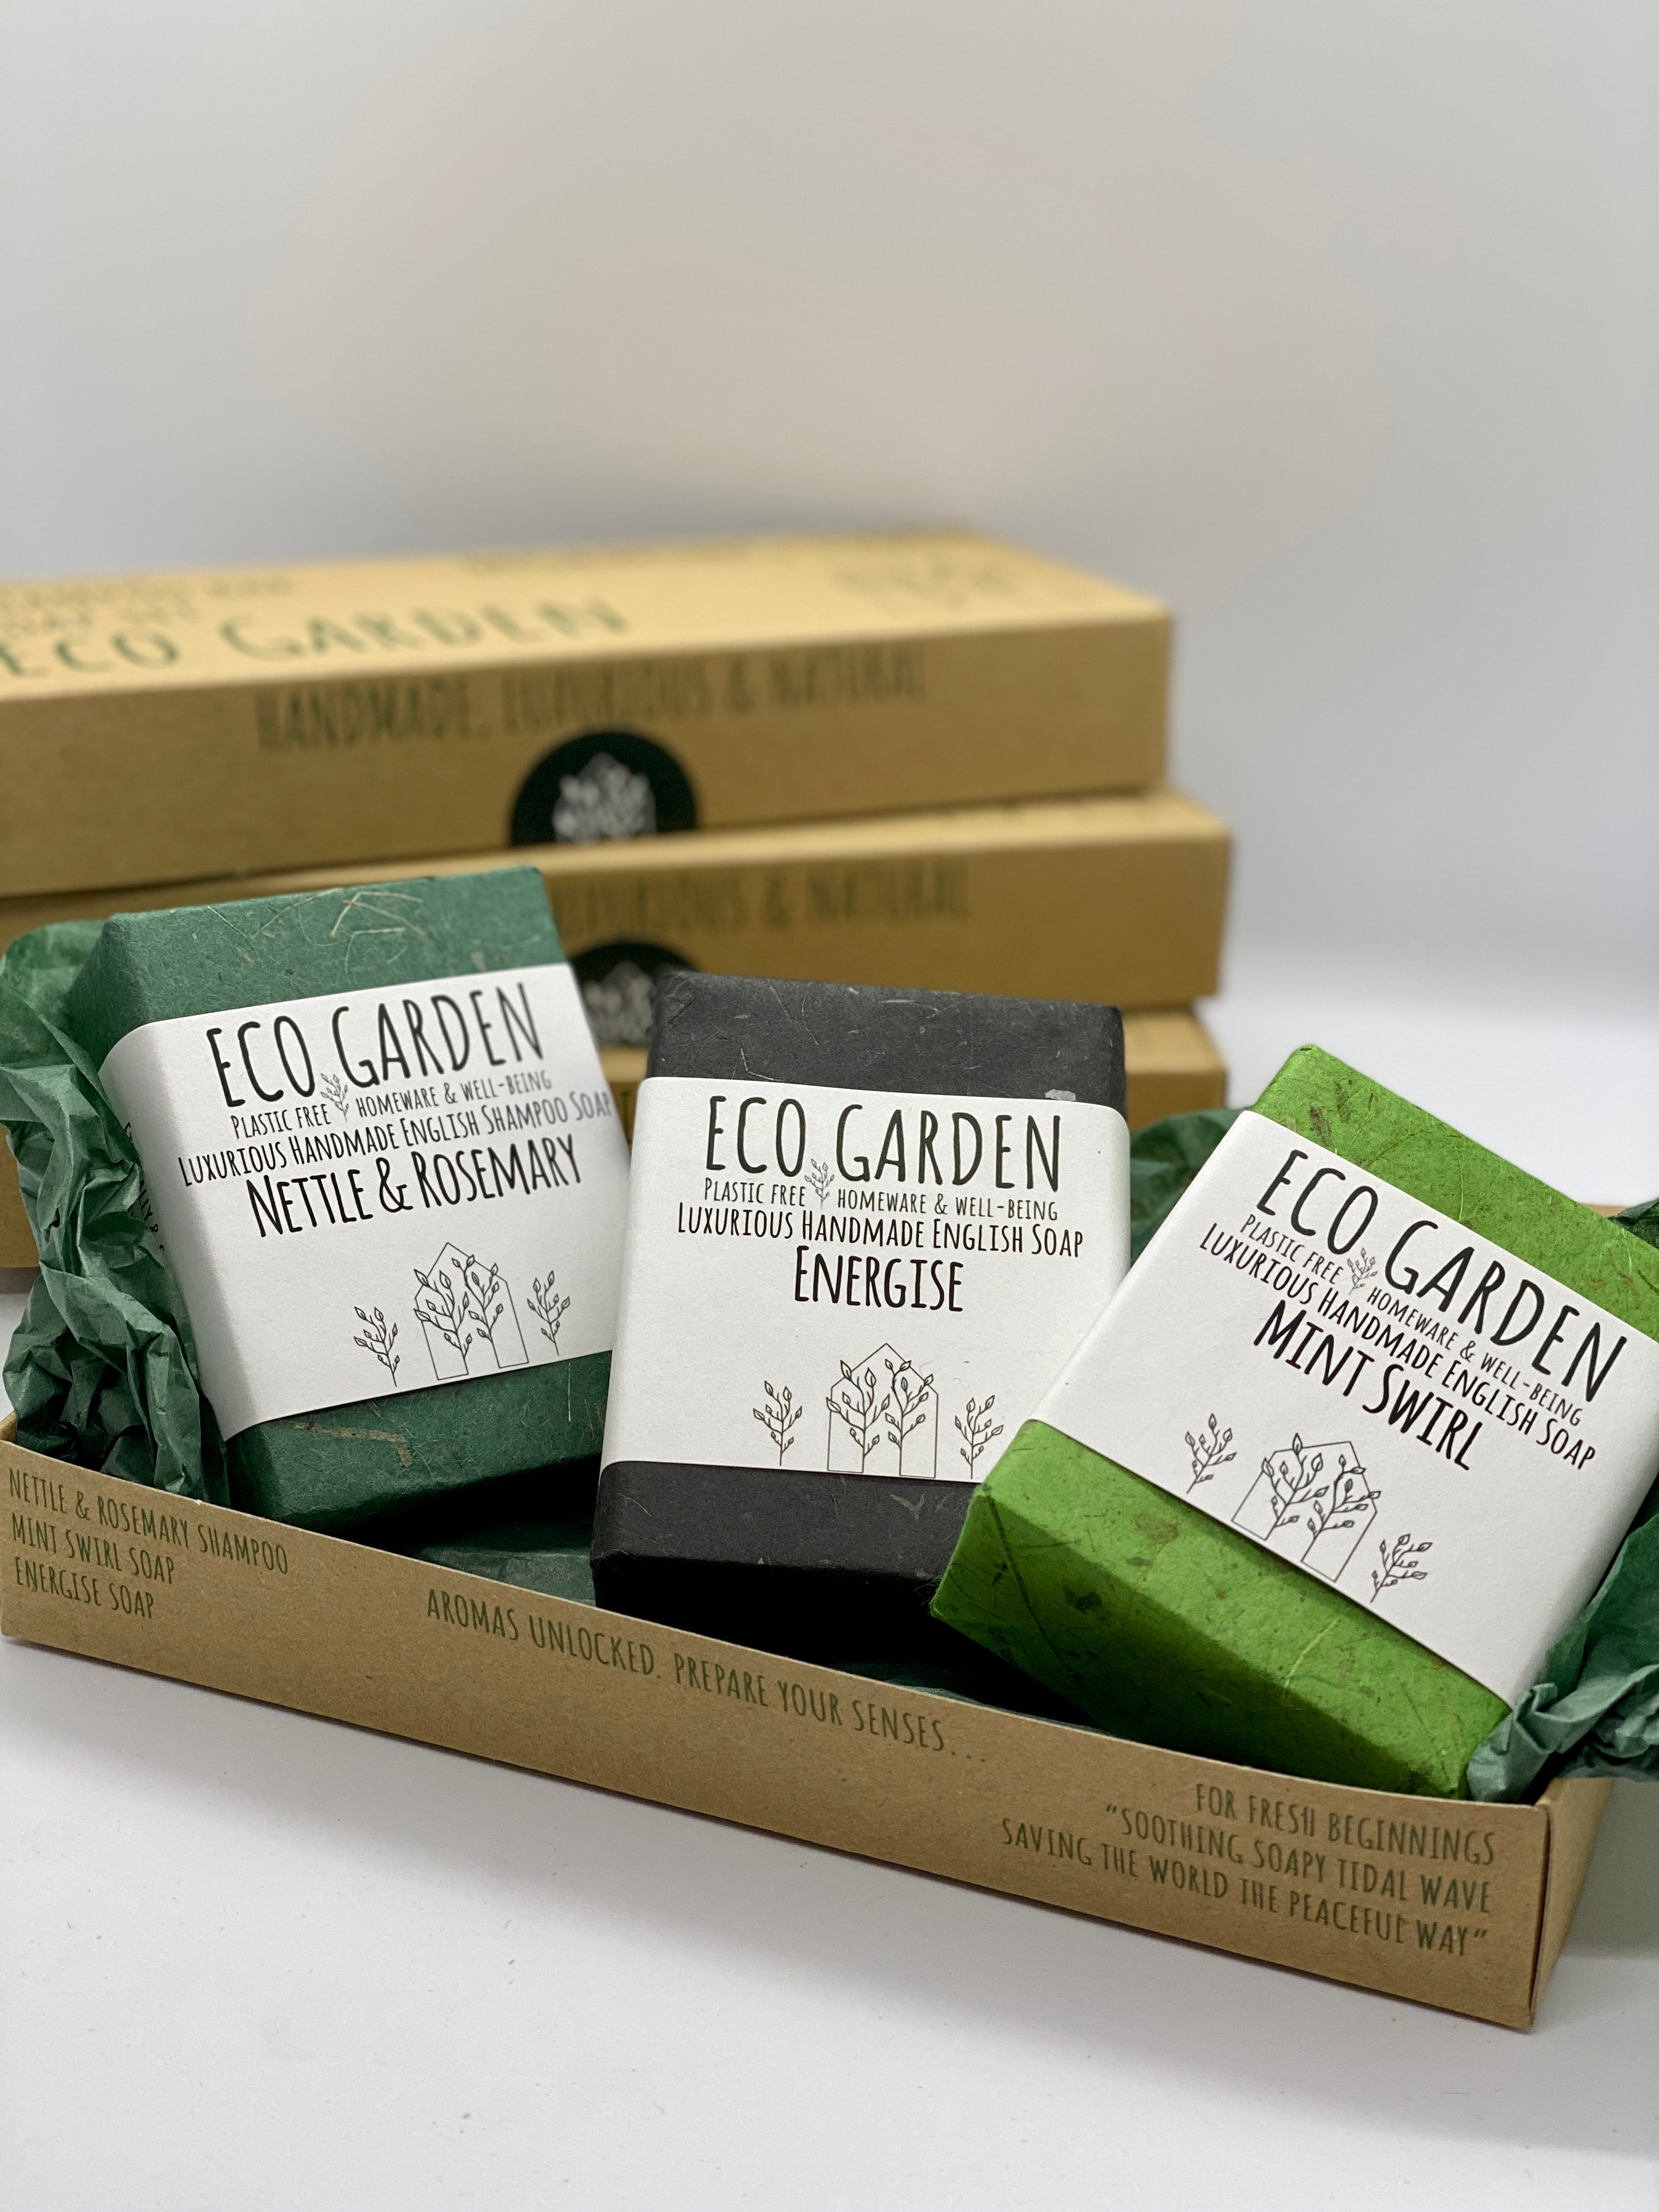 Morning Tide Eco Garden Handmade Luxury Natural Soap and Shampoo Bar Set